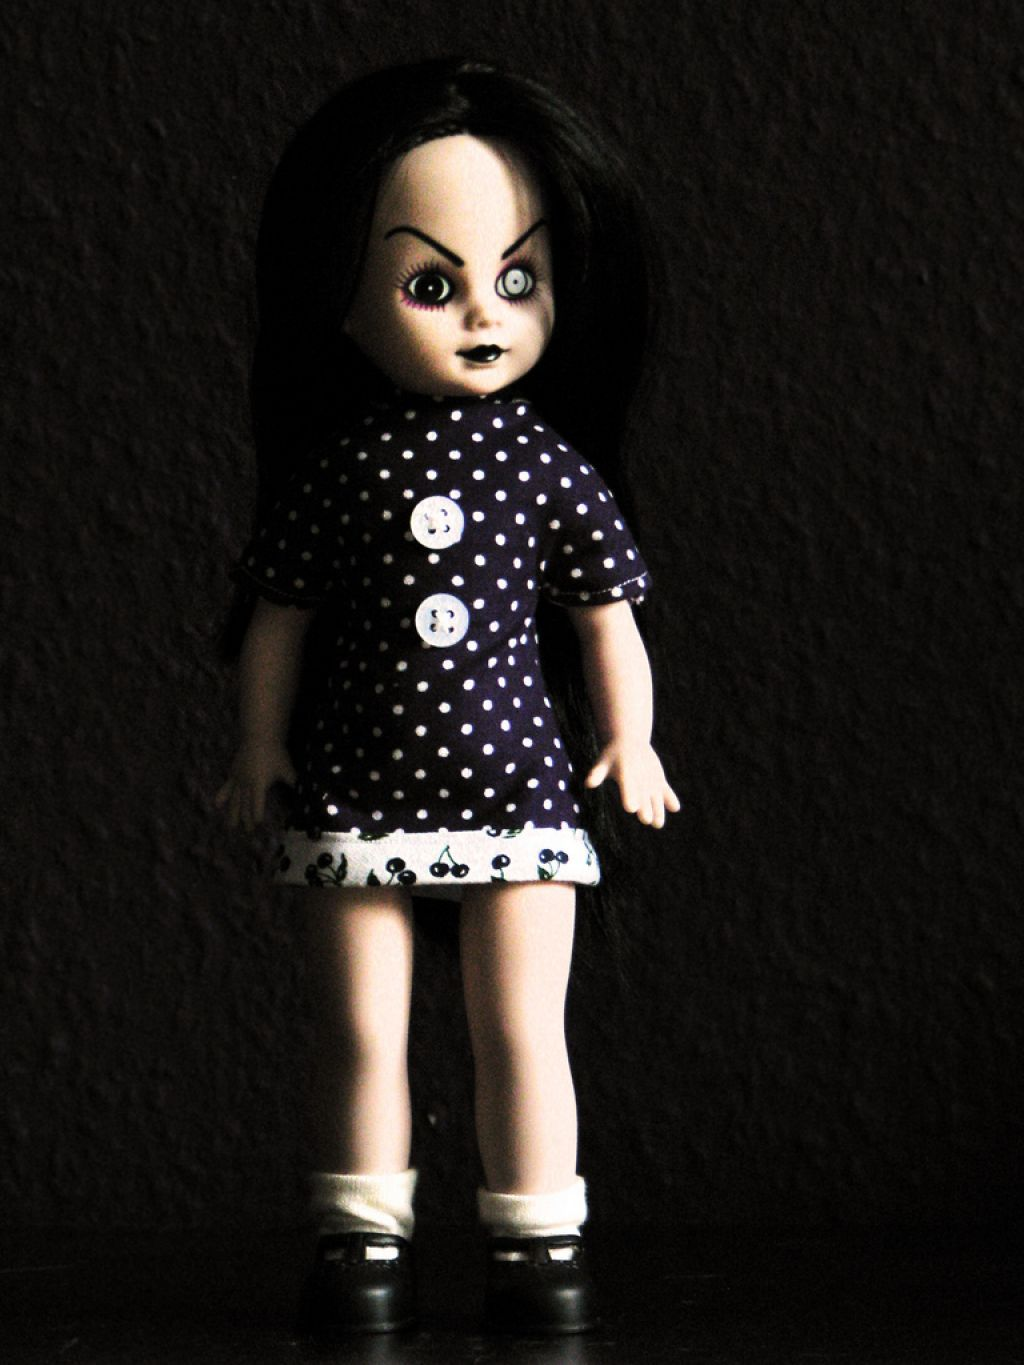 living dead doll8 Morbid Living Dead Dolls